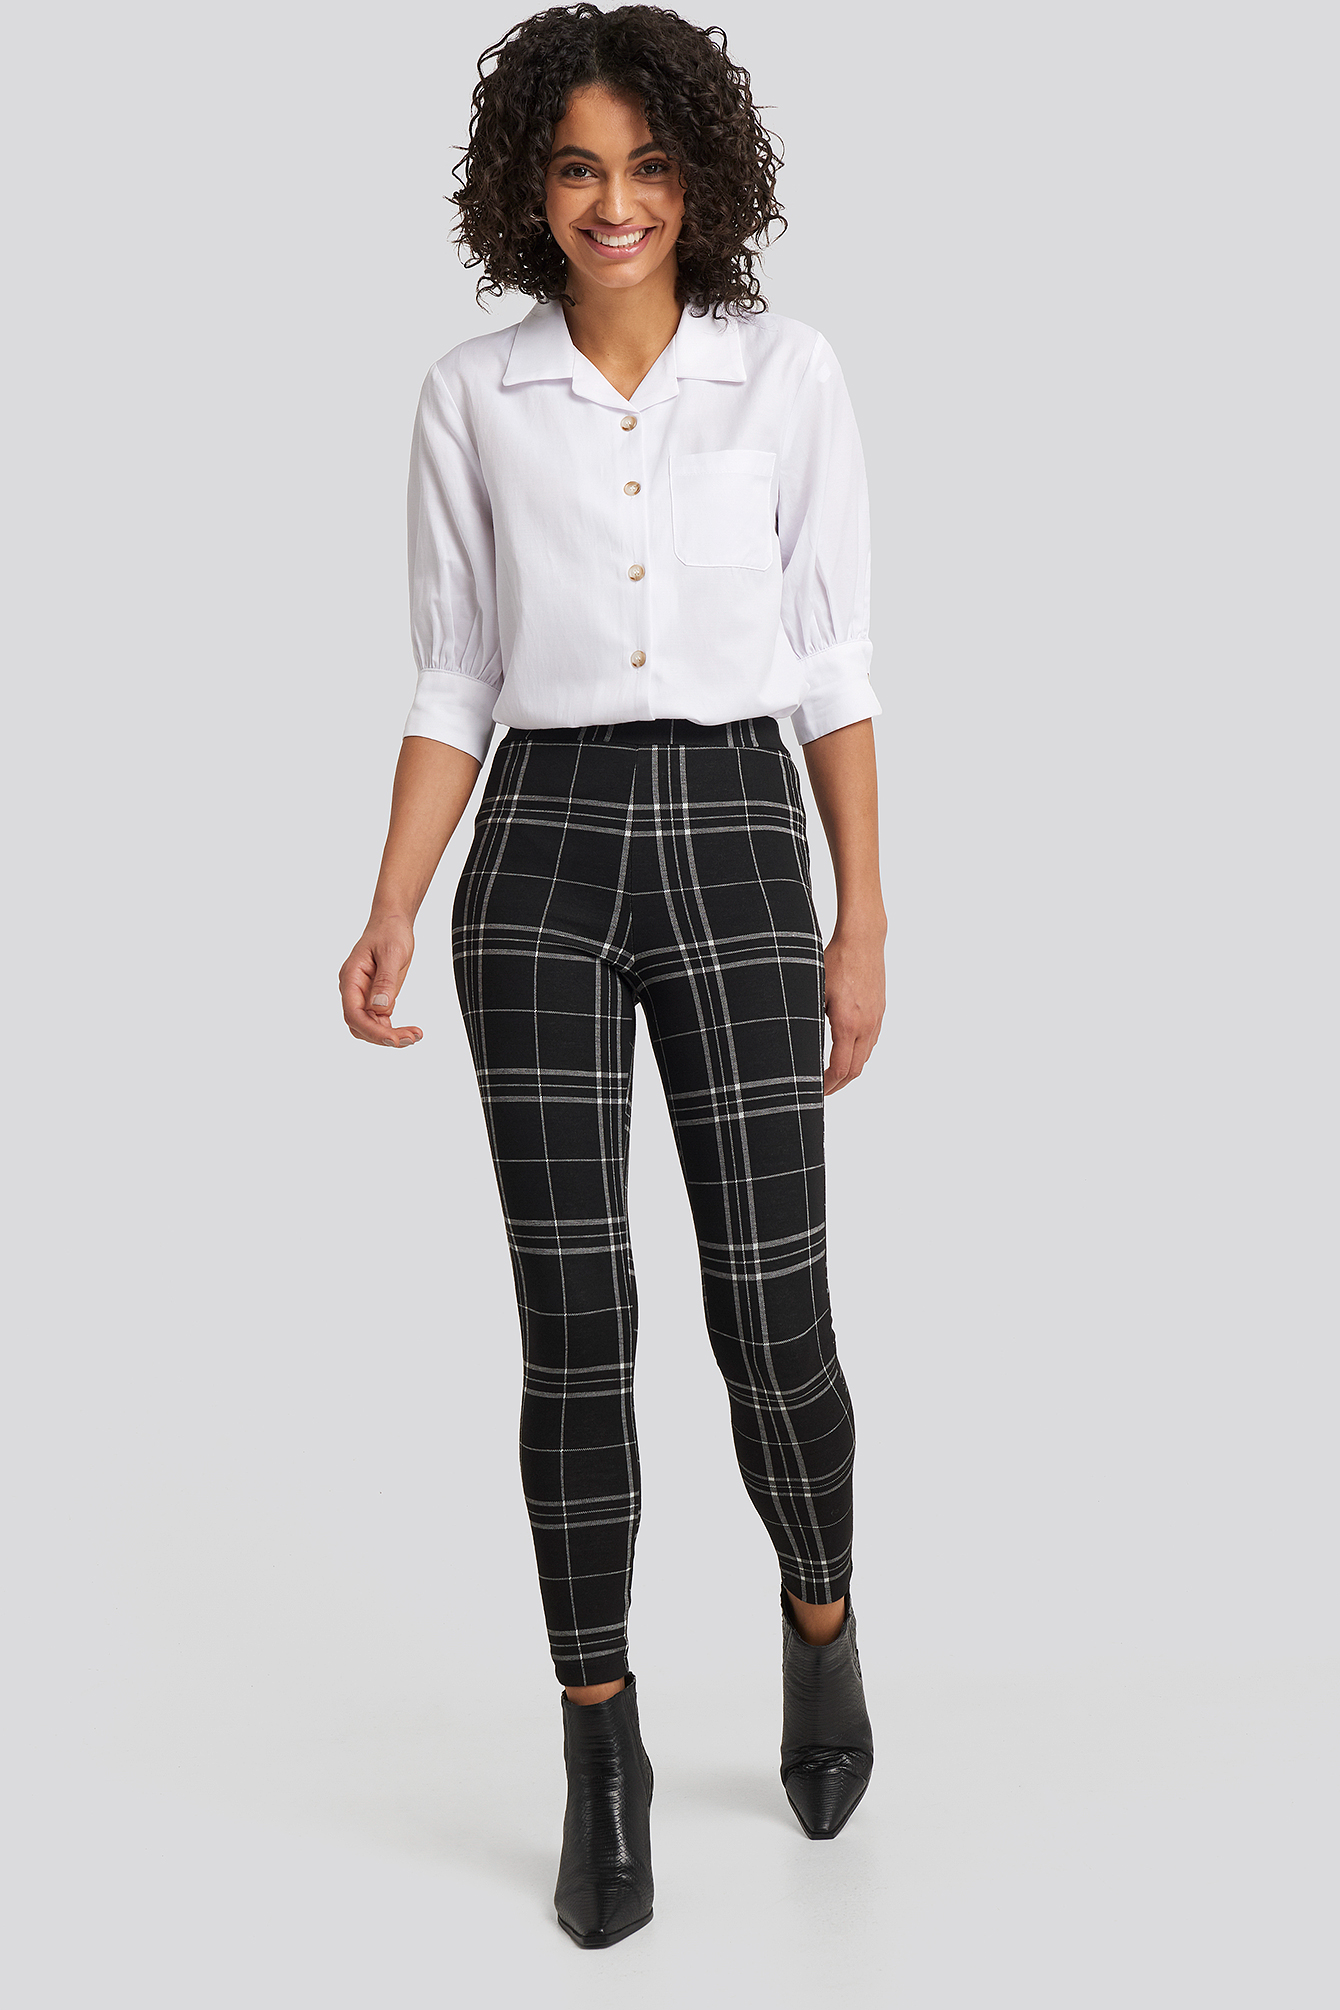 Black/White Check Leggings